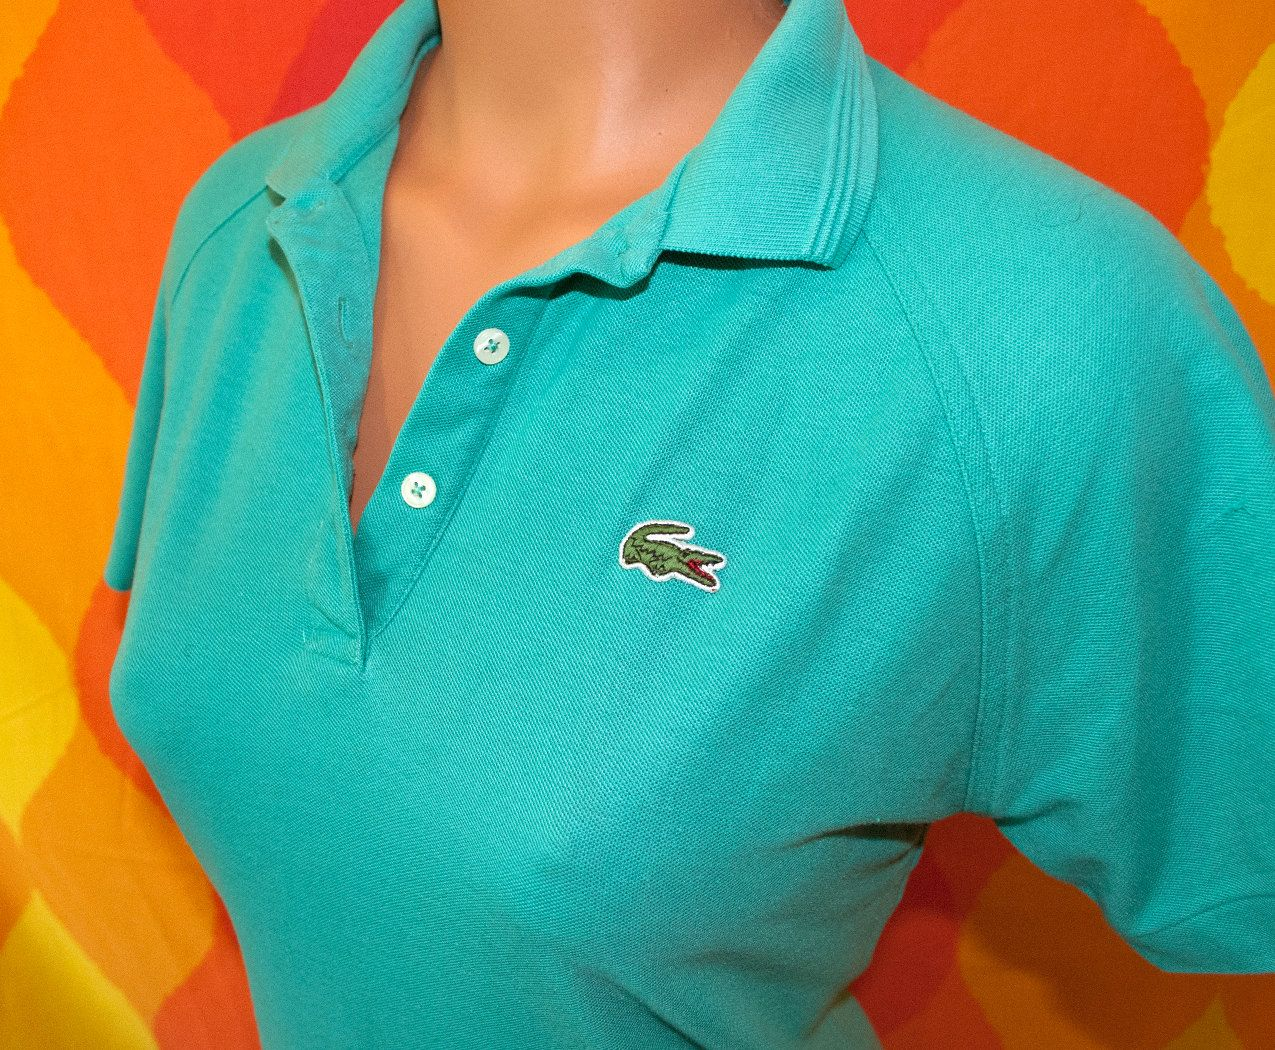 1970s womens Izod Lacoste for her polo shirt t-shirt size large made in Japan black yellow red blue striped alligator shirt ska preppy punk